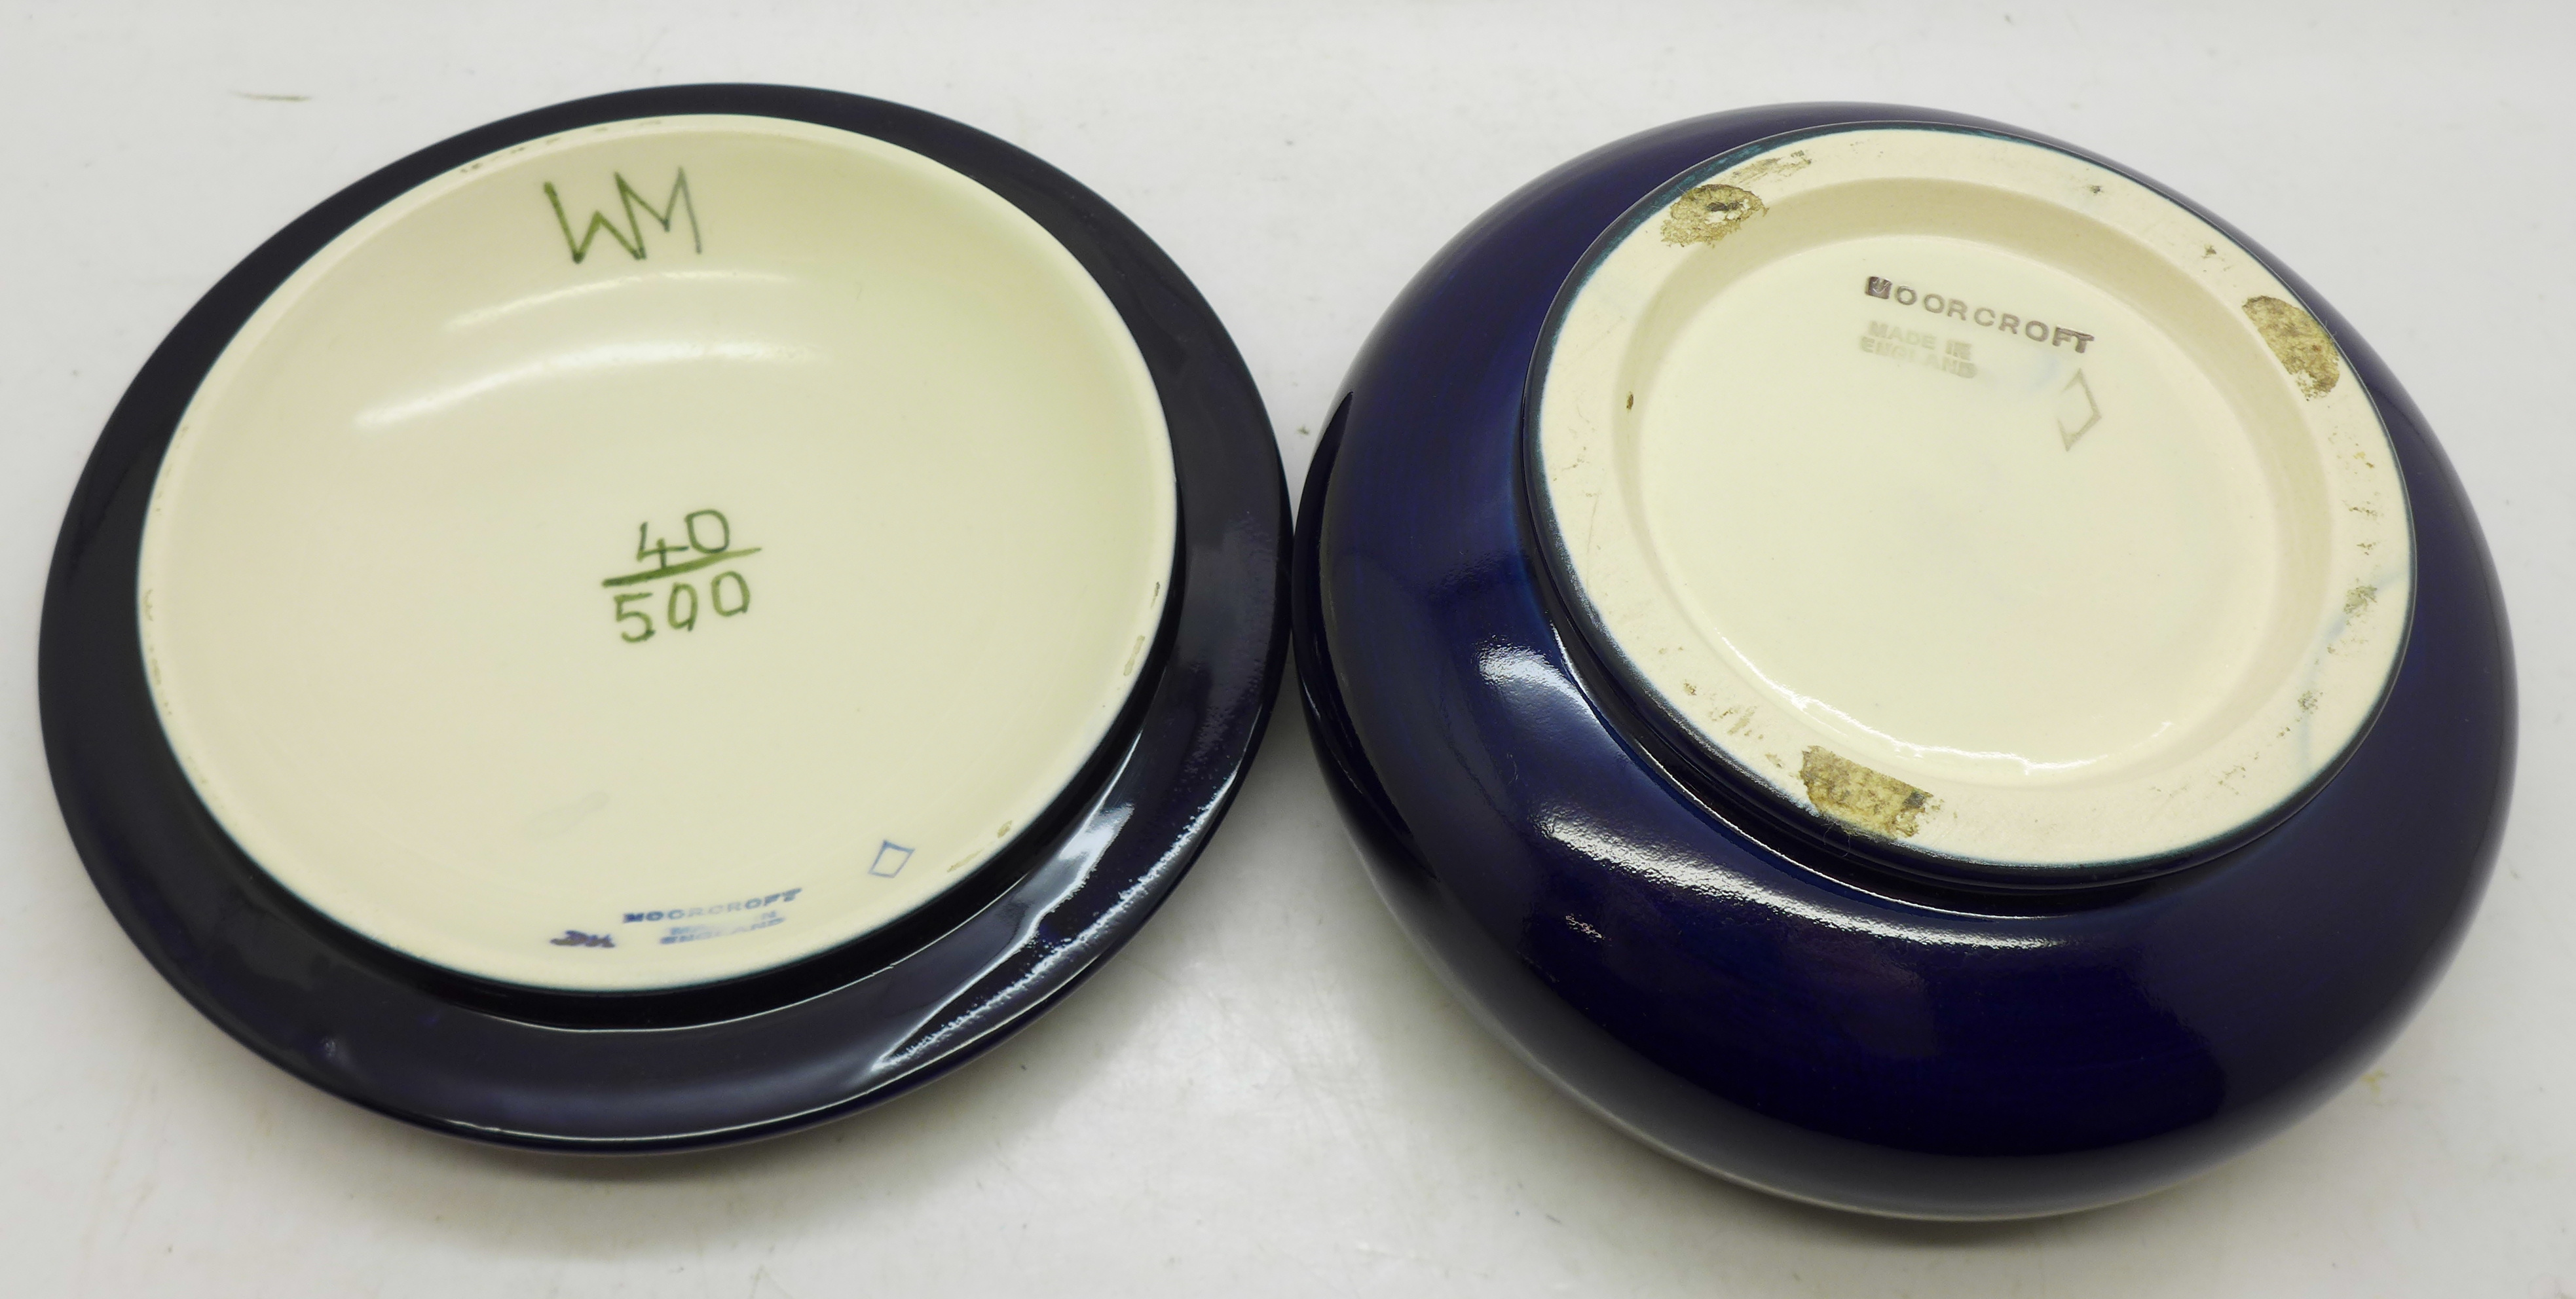 A Moorcroft Limited Edition lidded dish, 40/500, 122mm diameter - Image 5 of 5